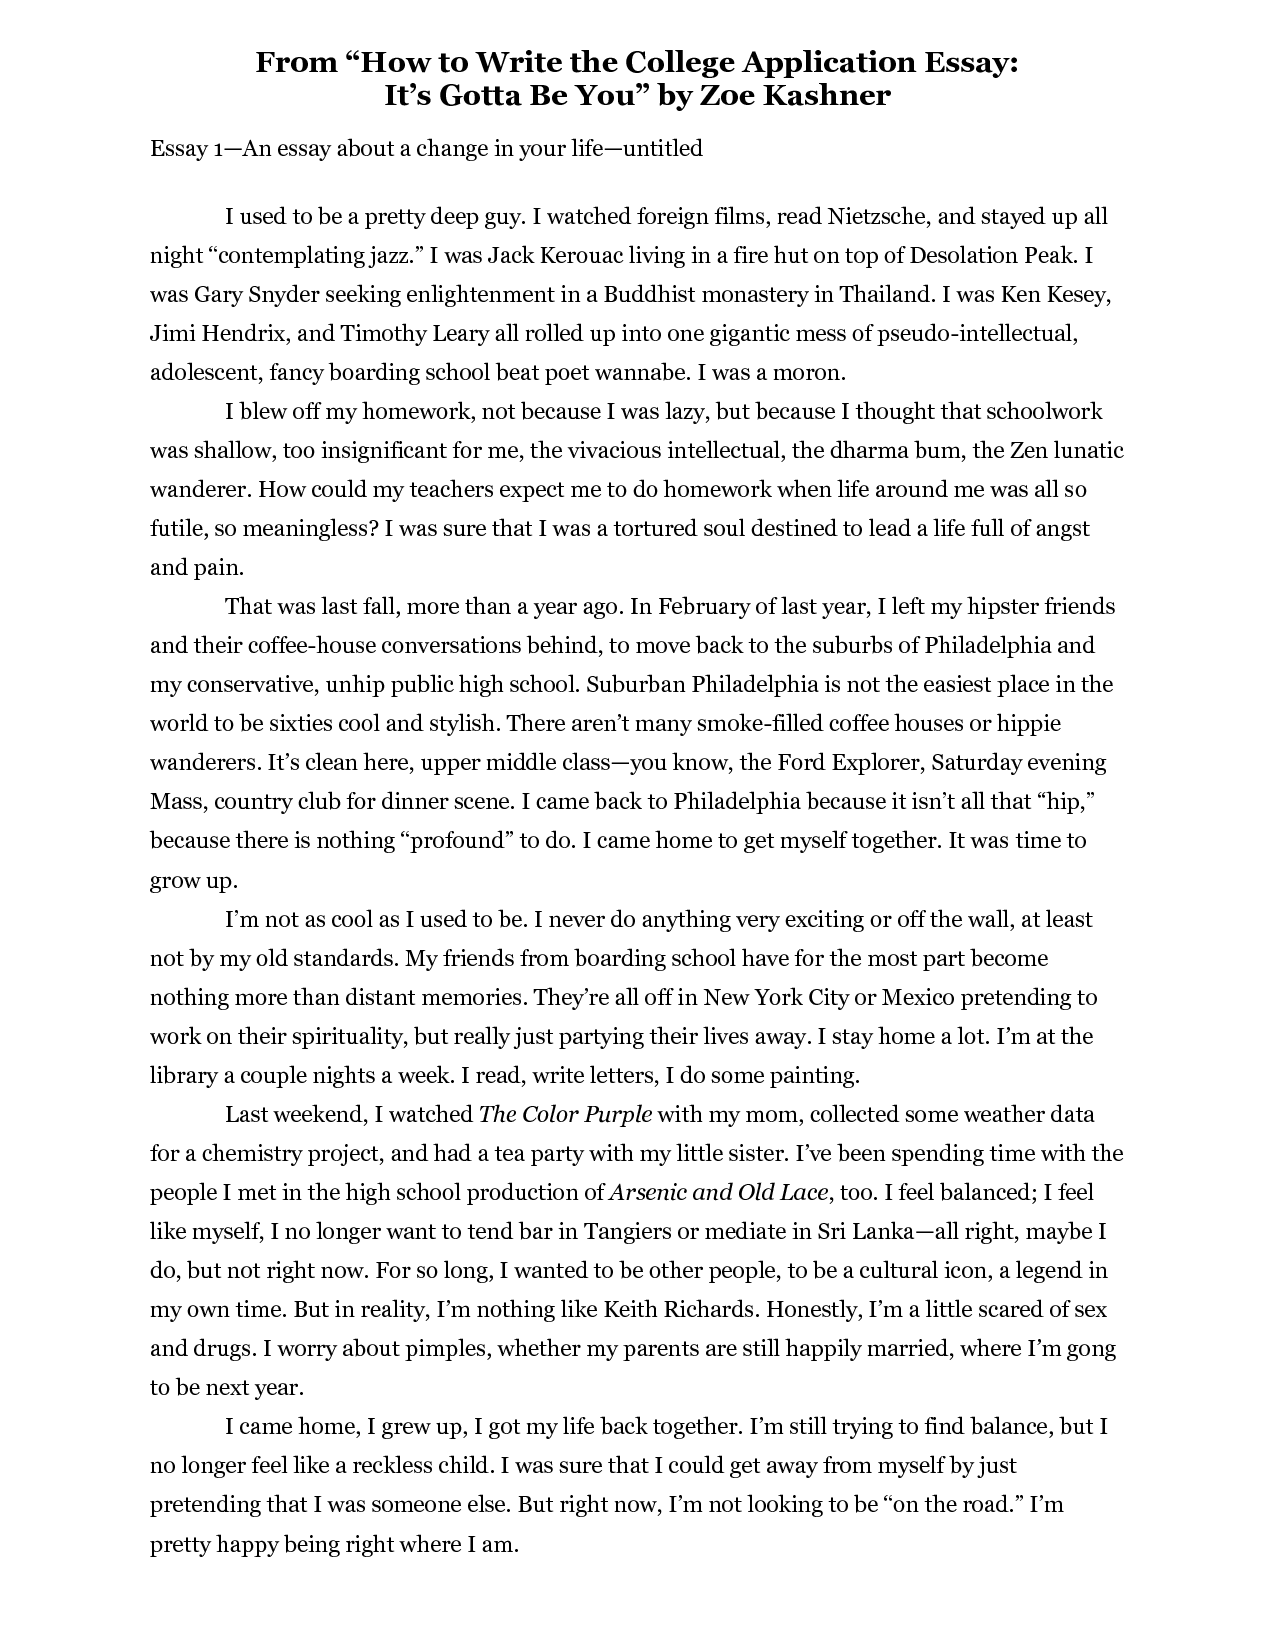 002 Oyt5kbffja Essay About Breathtaking Immigration Causes Friendship With Figure Of Speech Technology And Communication Full